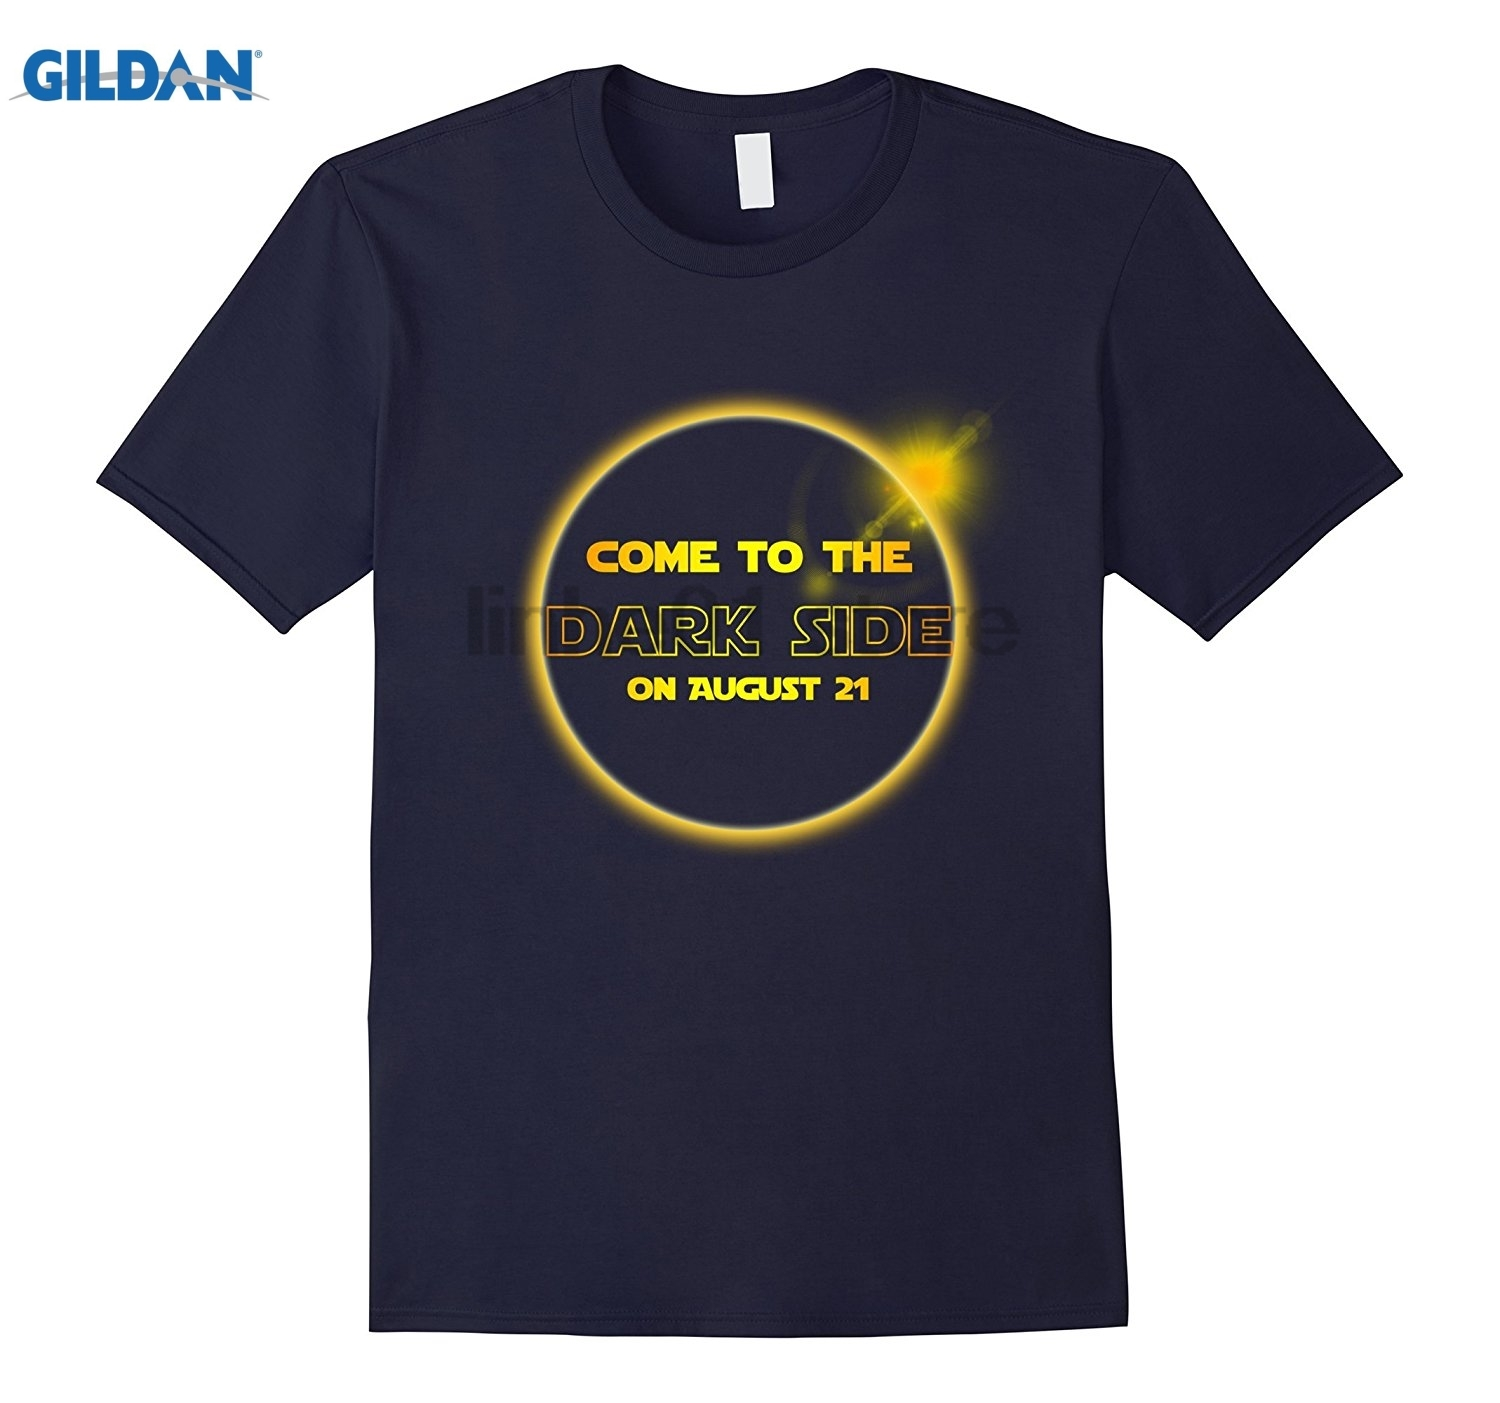 GILDAN COME TO THE DARK SIDE August 21 Solar Eclipse T shirt Mothers Day Ms. T-shirt Dress female T-shirt